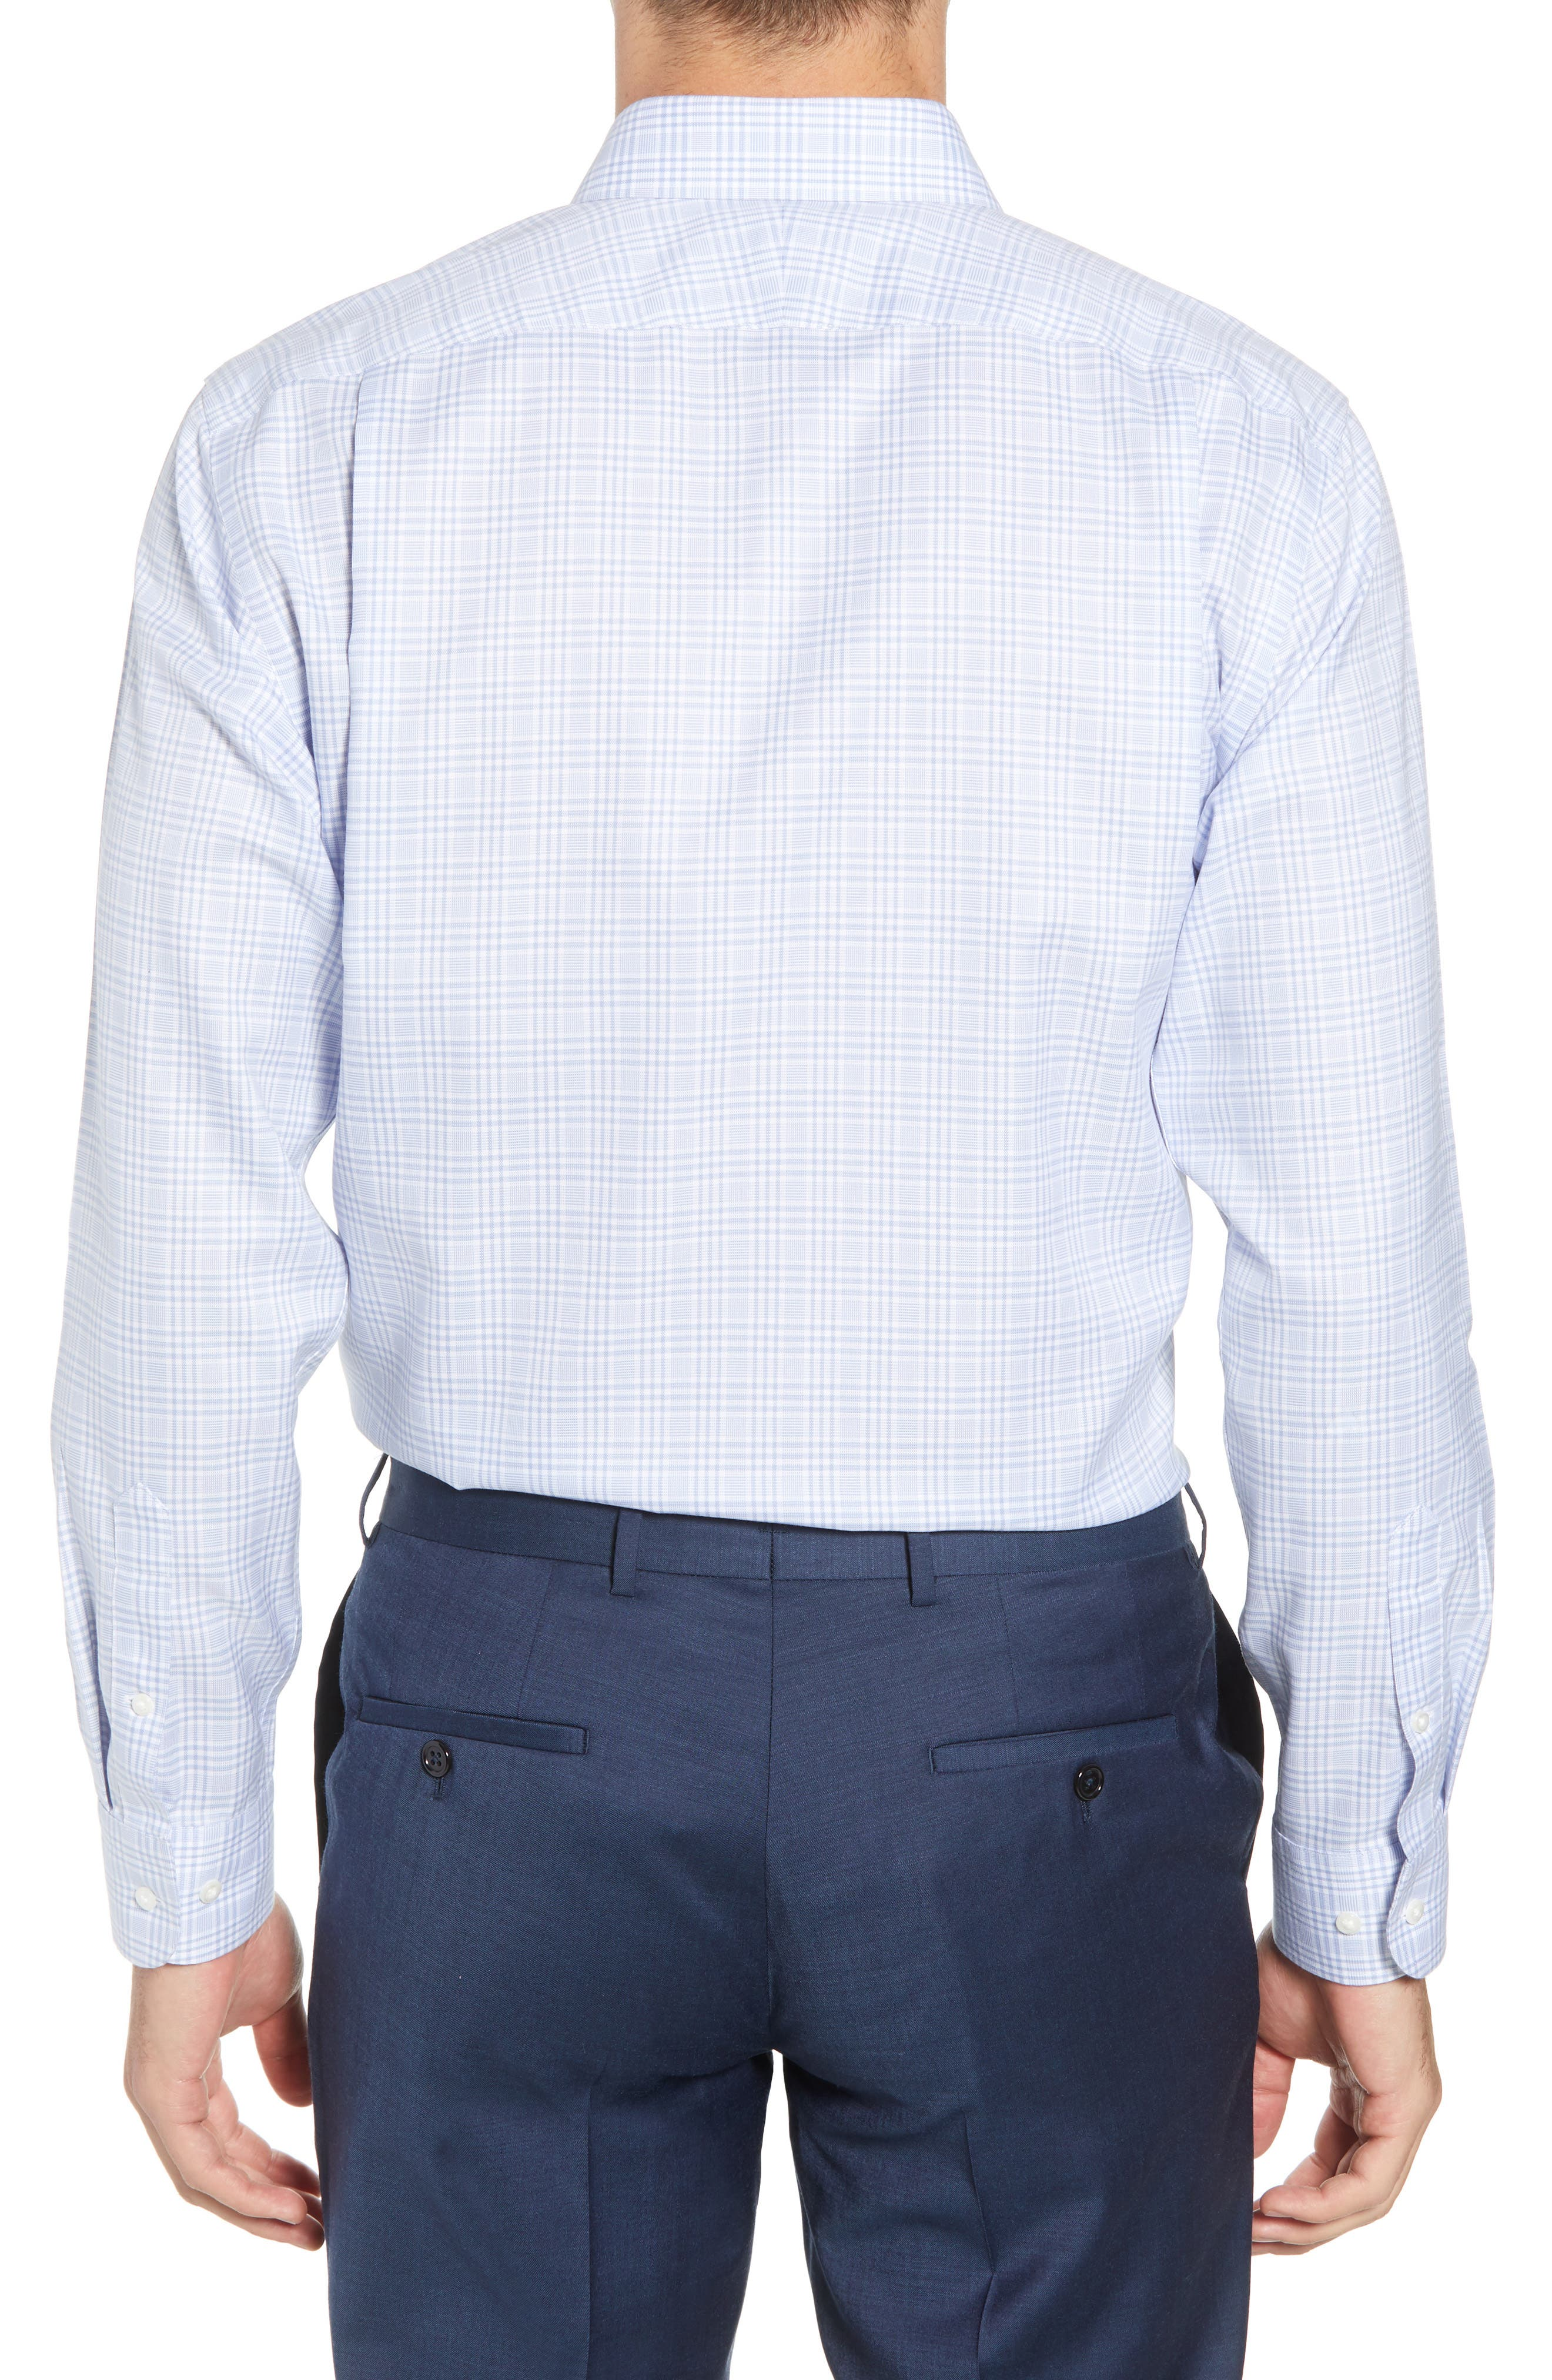 Smartcare<sup>™</sup> Traditional Fit Plaid Dress Shirt,                             Alternate thumbnail 6, color,